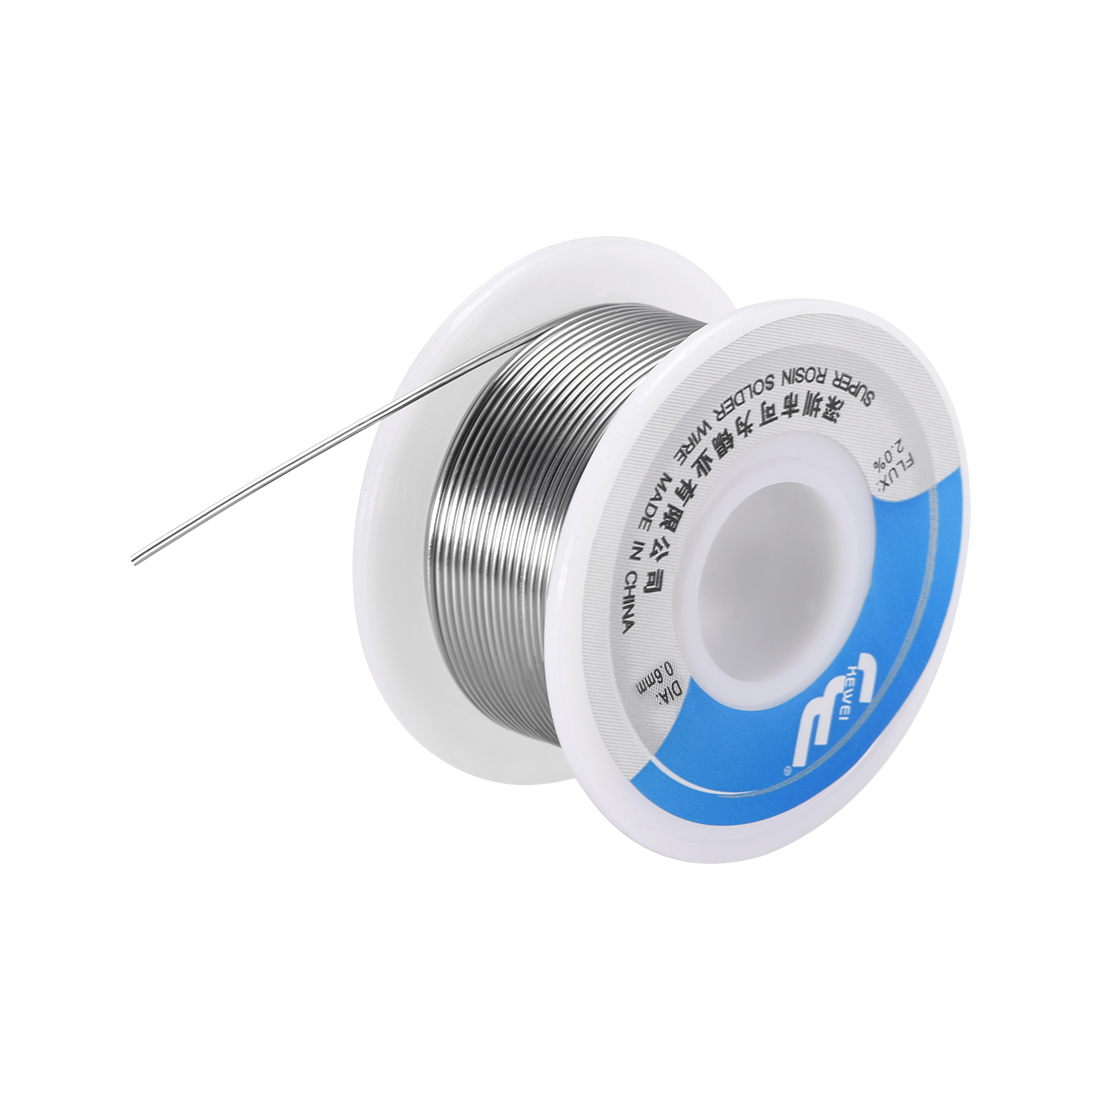 Solder Wire 0.6mm 100g Sn63% Pb37% with Rosin Core for Electrical Soldering